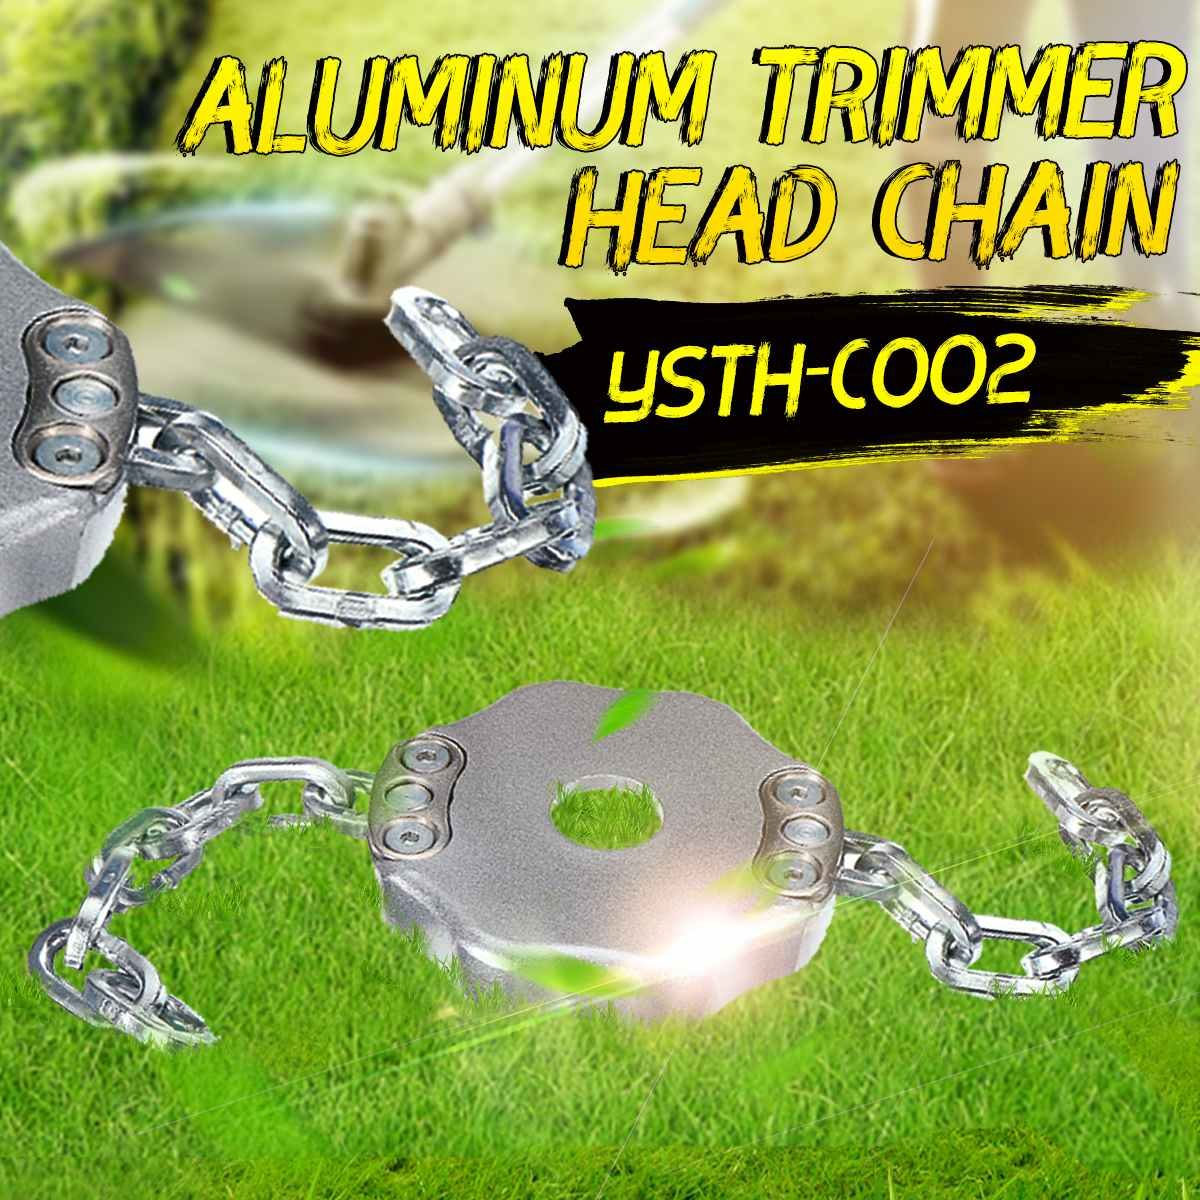 Universal Trimmer Head Aluminum Lawn Mower Parts Outdoor Coil Chain Grass Weeds Cutter Garden Grass Trimmer Tools Replacement